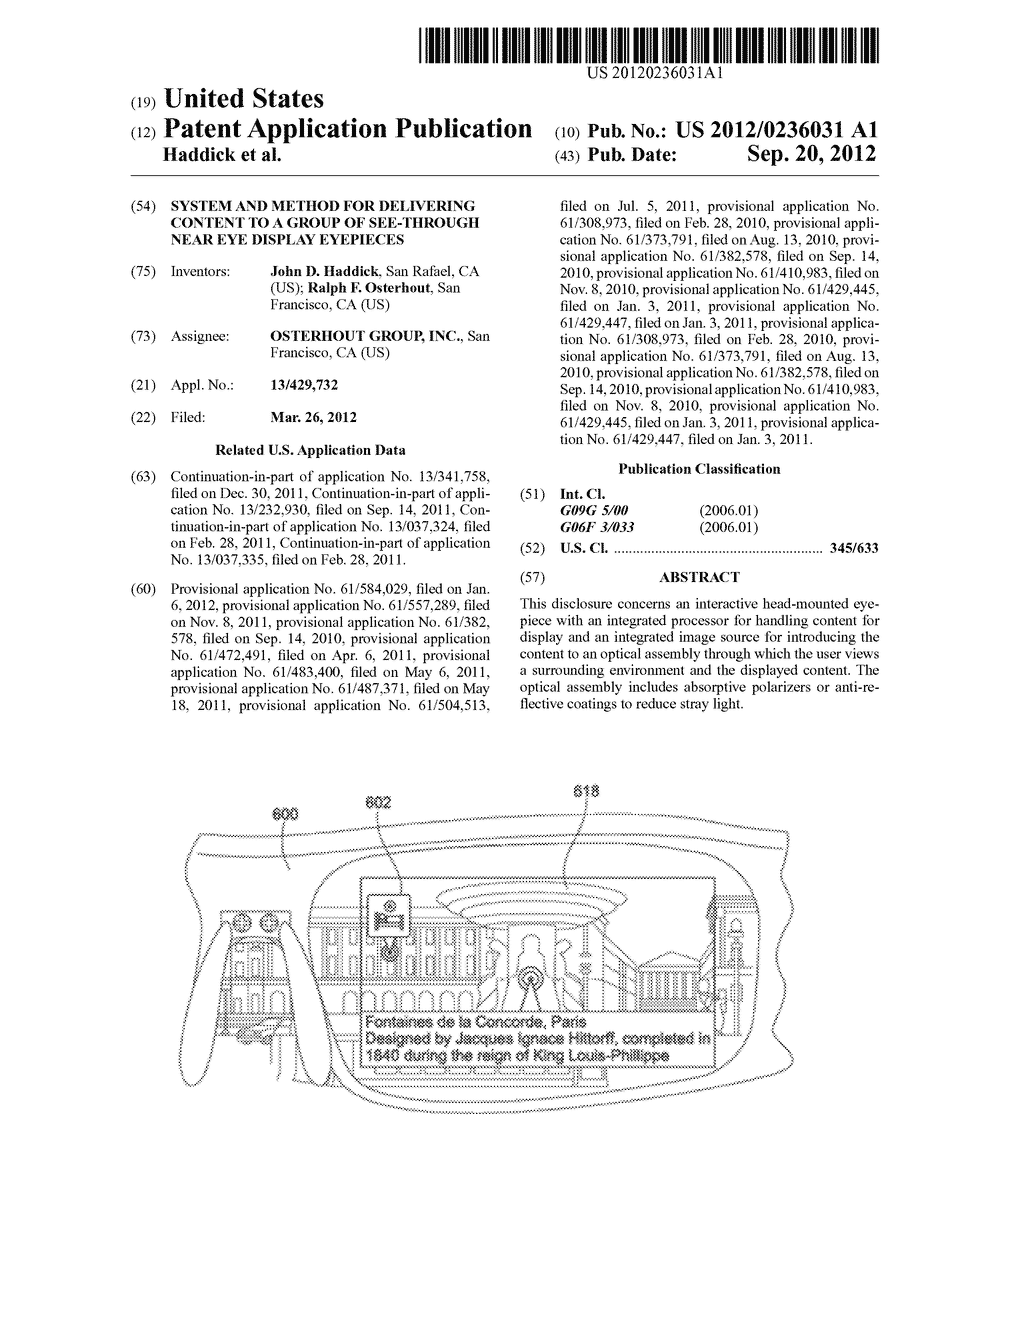 SYSTEM AND METHOD FOR DELIVERING CONTENT TO A GROUP OF SEE-THROUGH NEAR     EYE DISPLAY EYEPIECES - diagram, schematic, and image 01